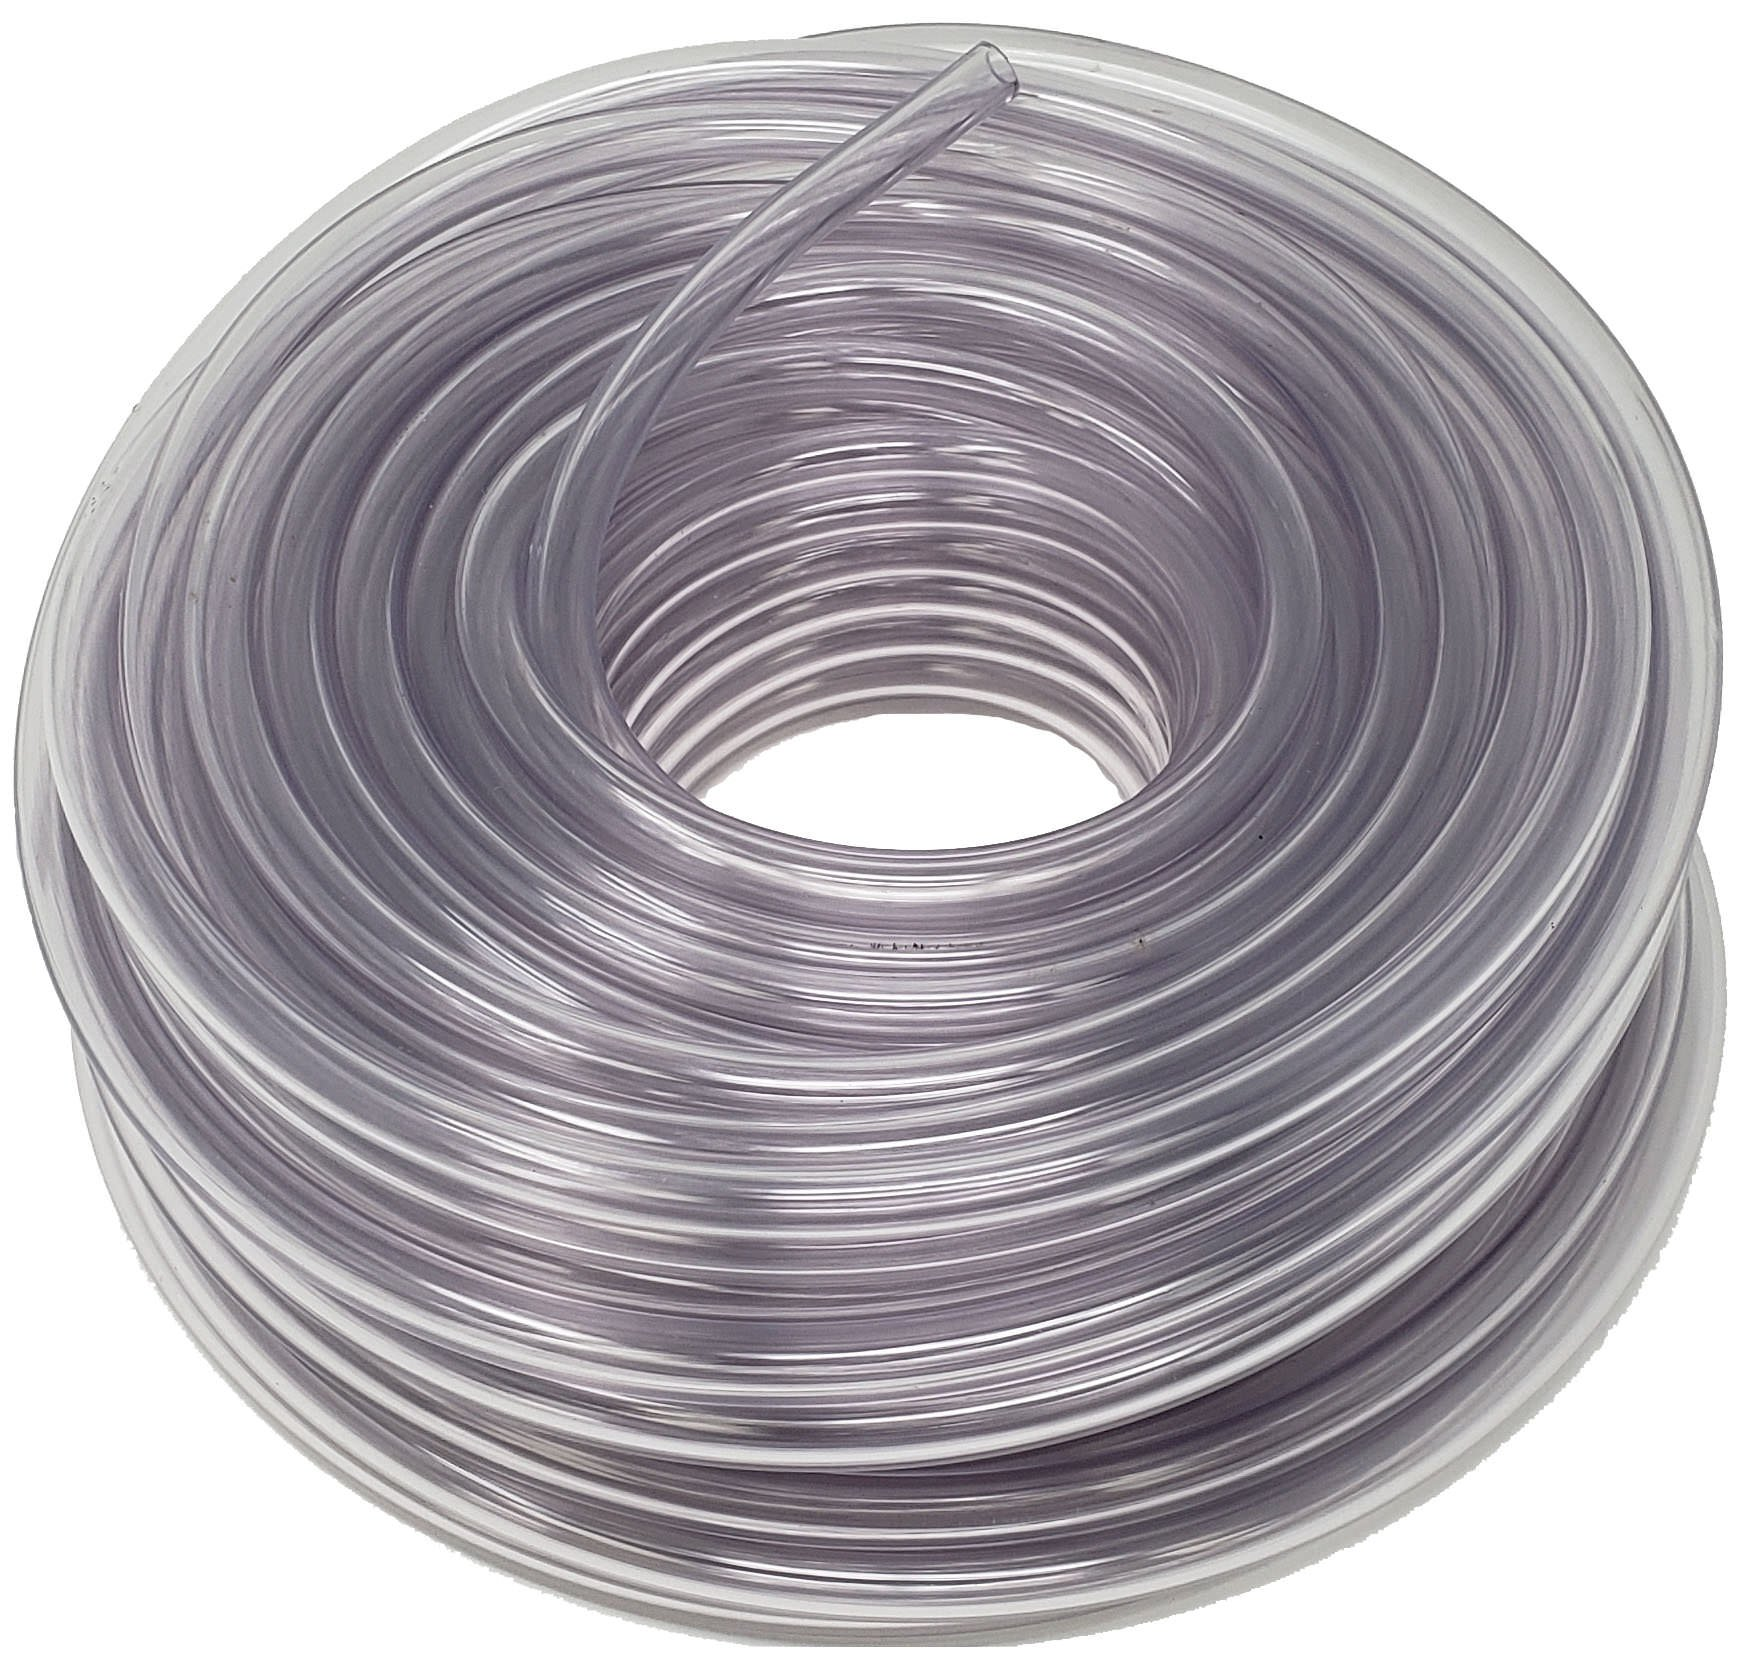 Sealproof Unreinforced PVC Clear Vinyl Tubing, 100 FT, 1/4-Inch-ID x 3/8-Inch OD